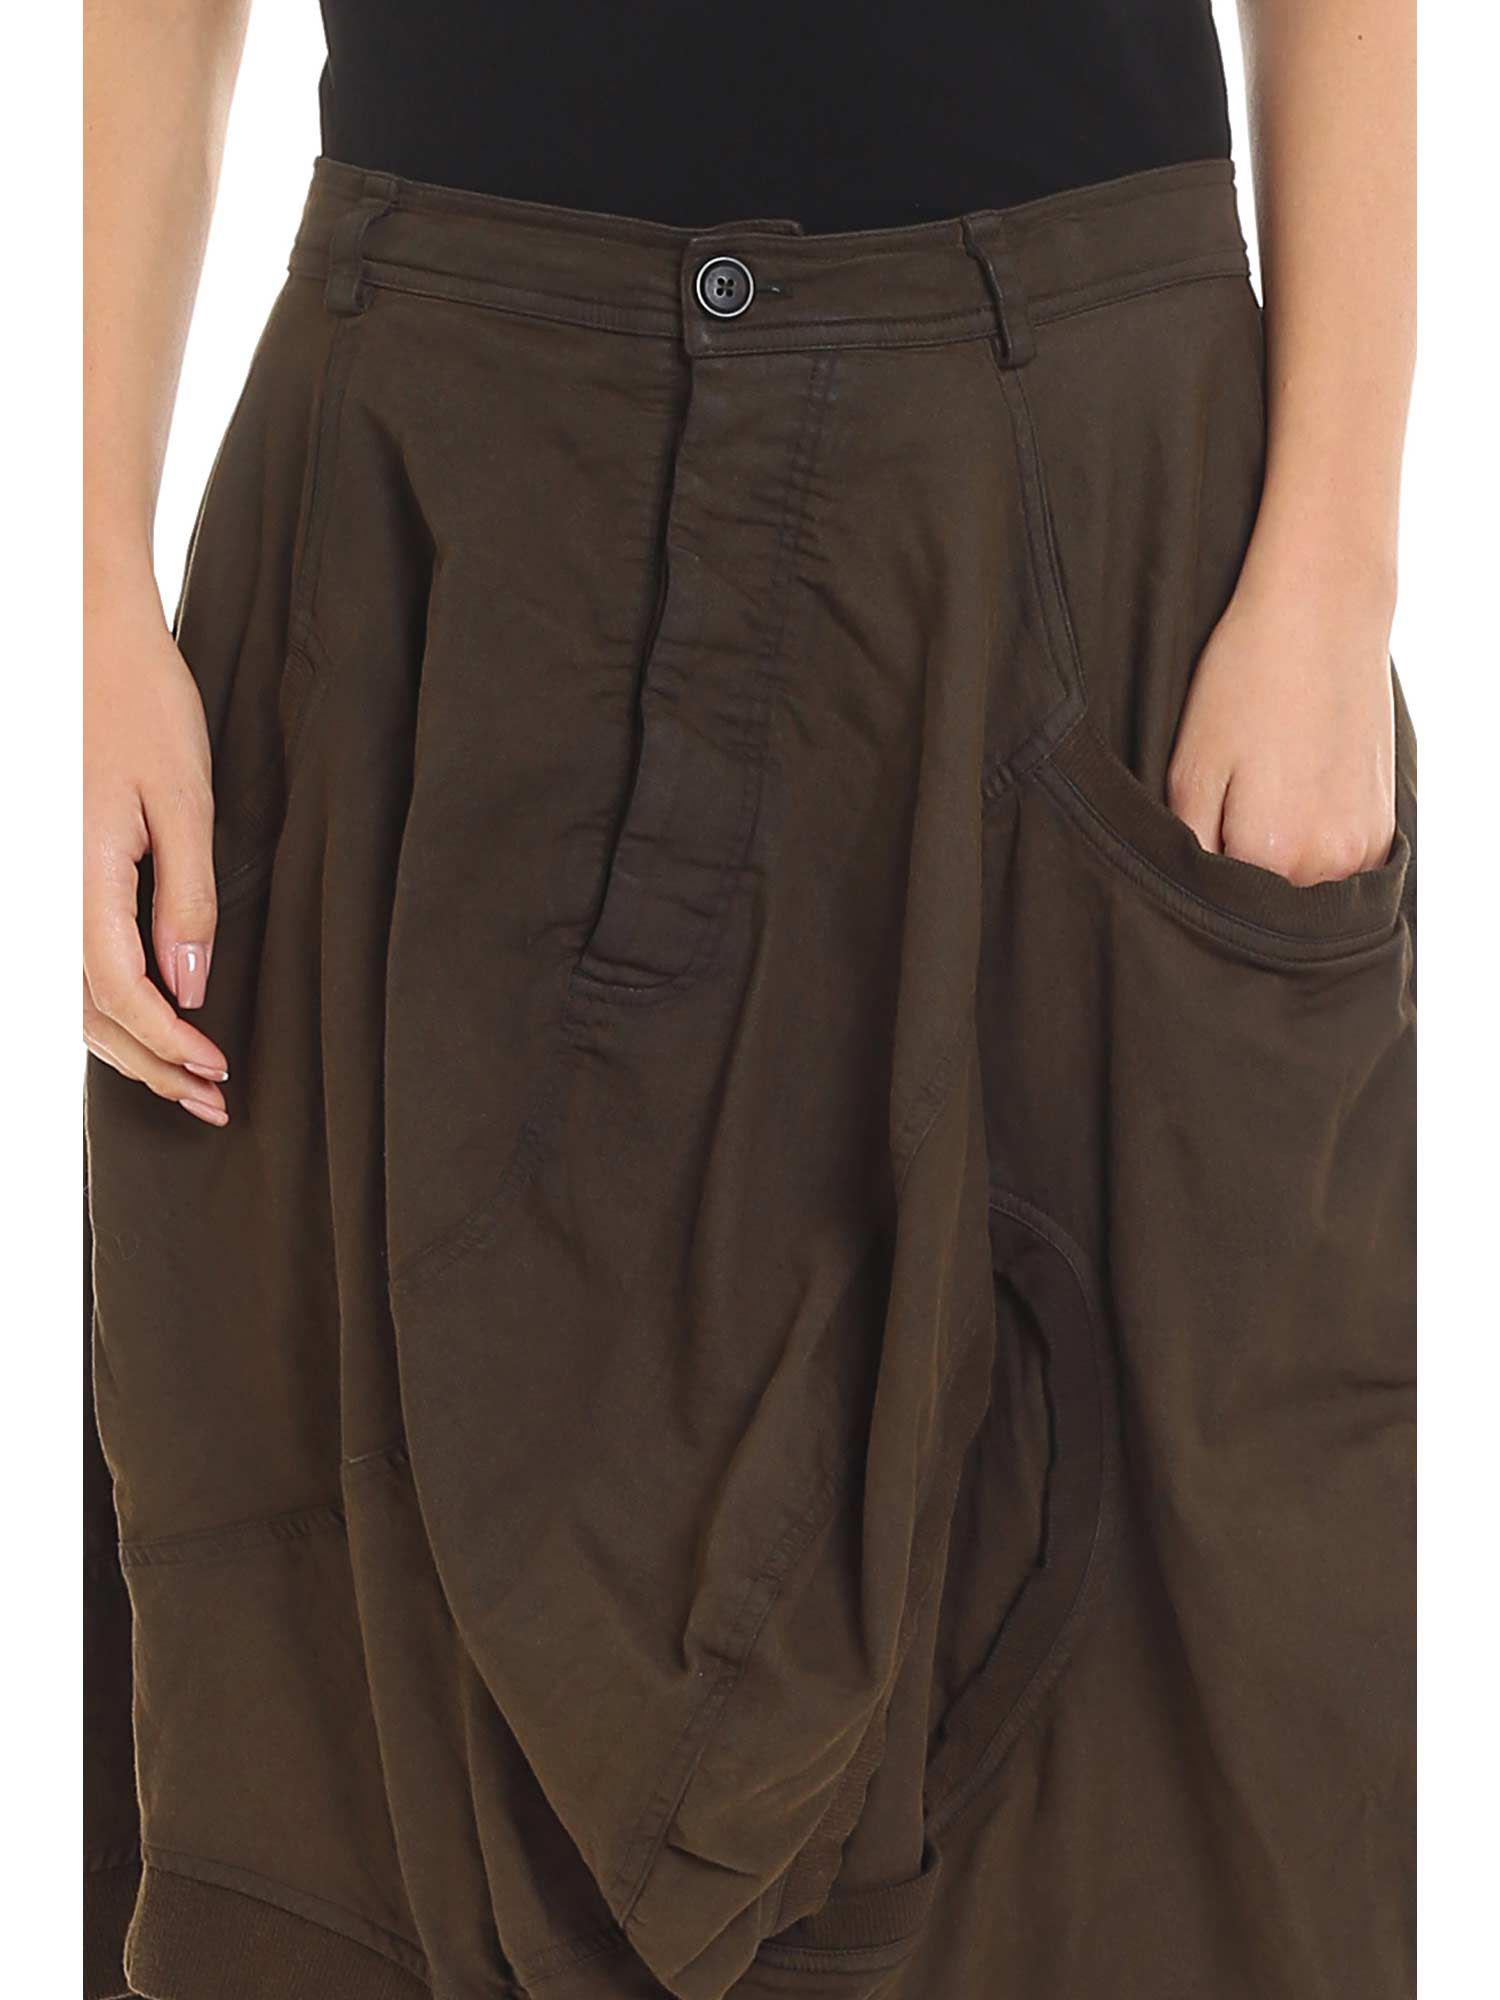 551525198 Rundholz - Green Knee-length Skirt - Lyst. View fullscreen